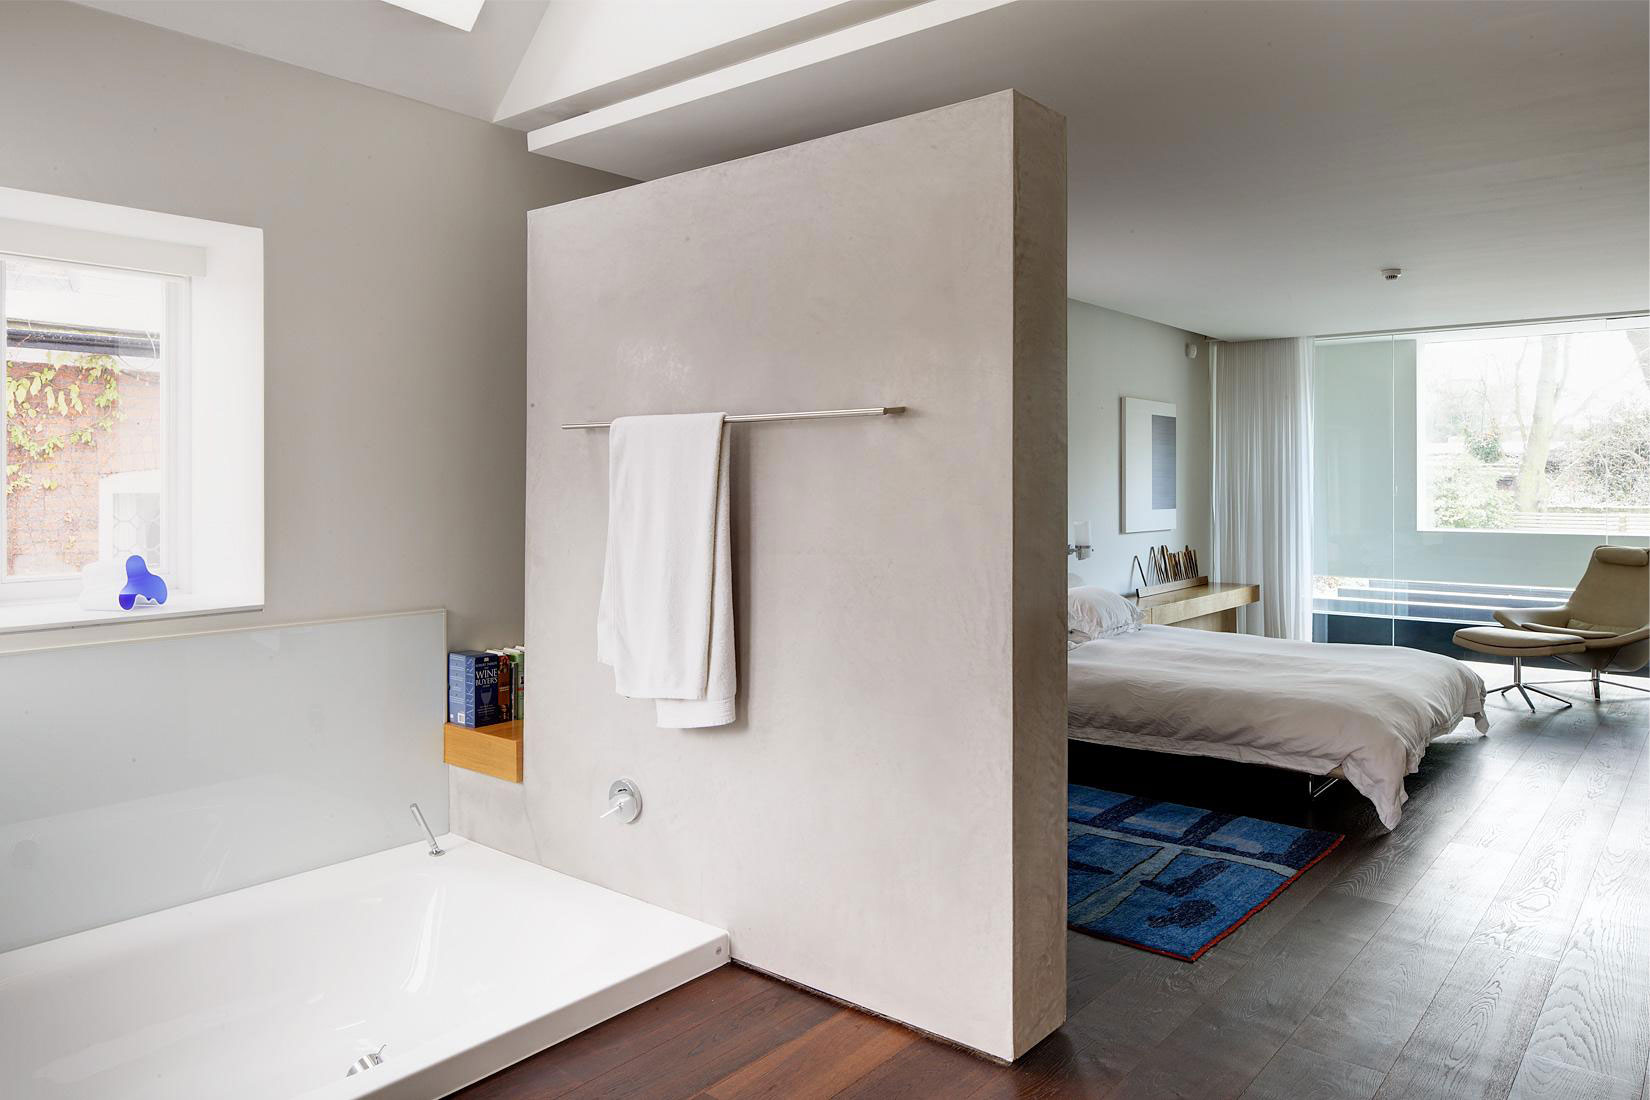 Simple Concrete Room Divider with Stainless Towel Rack Separating Bathroom from Bedroom